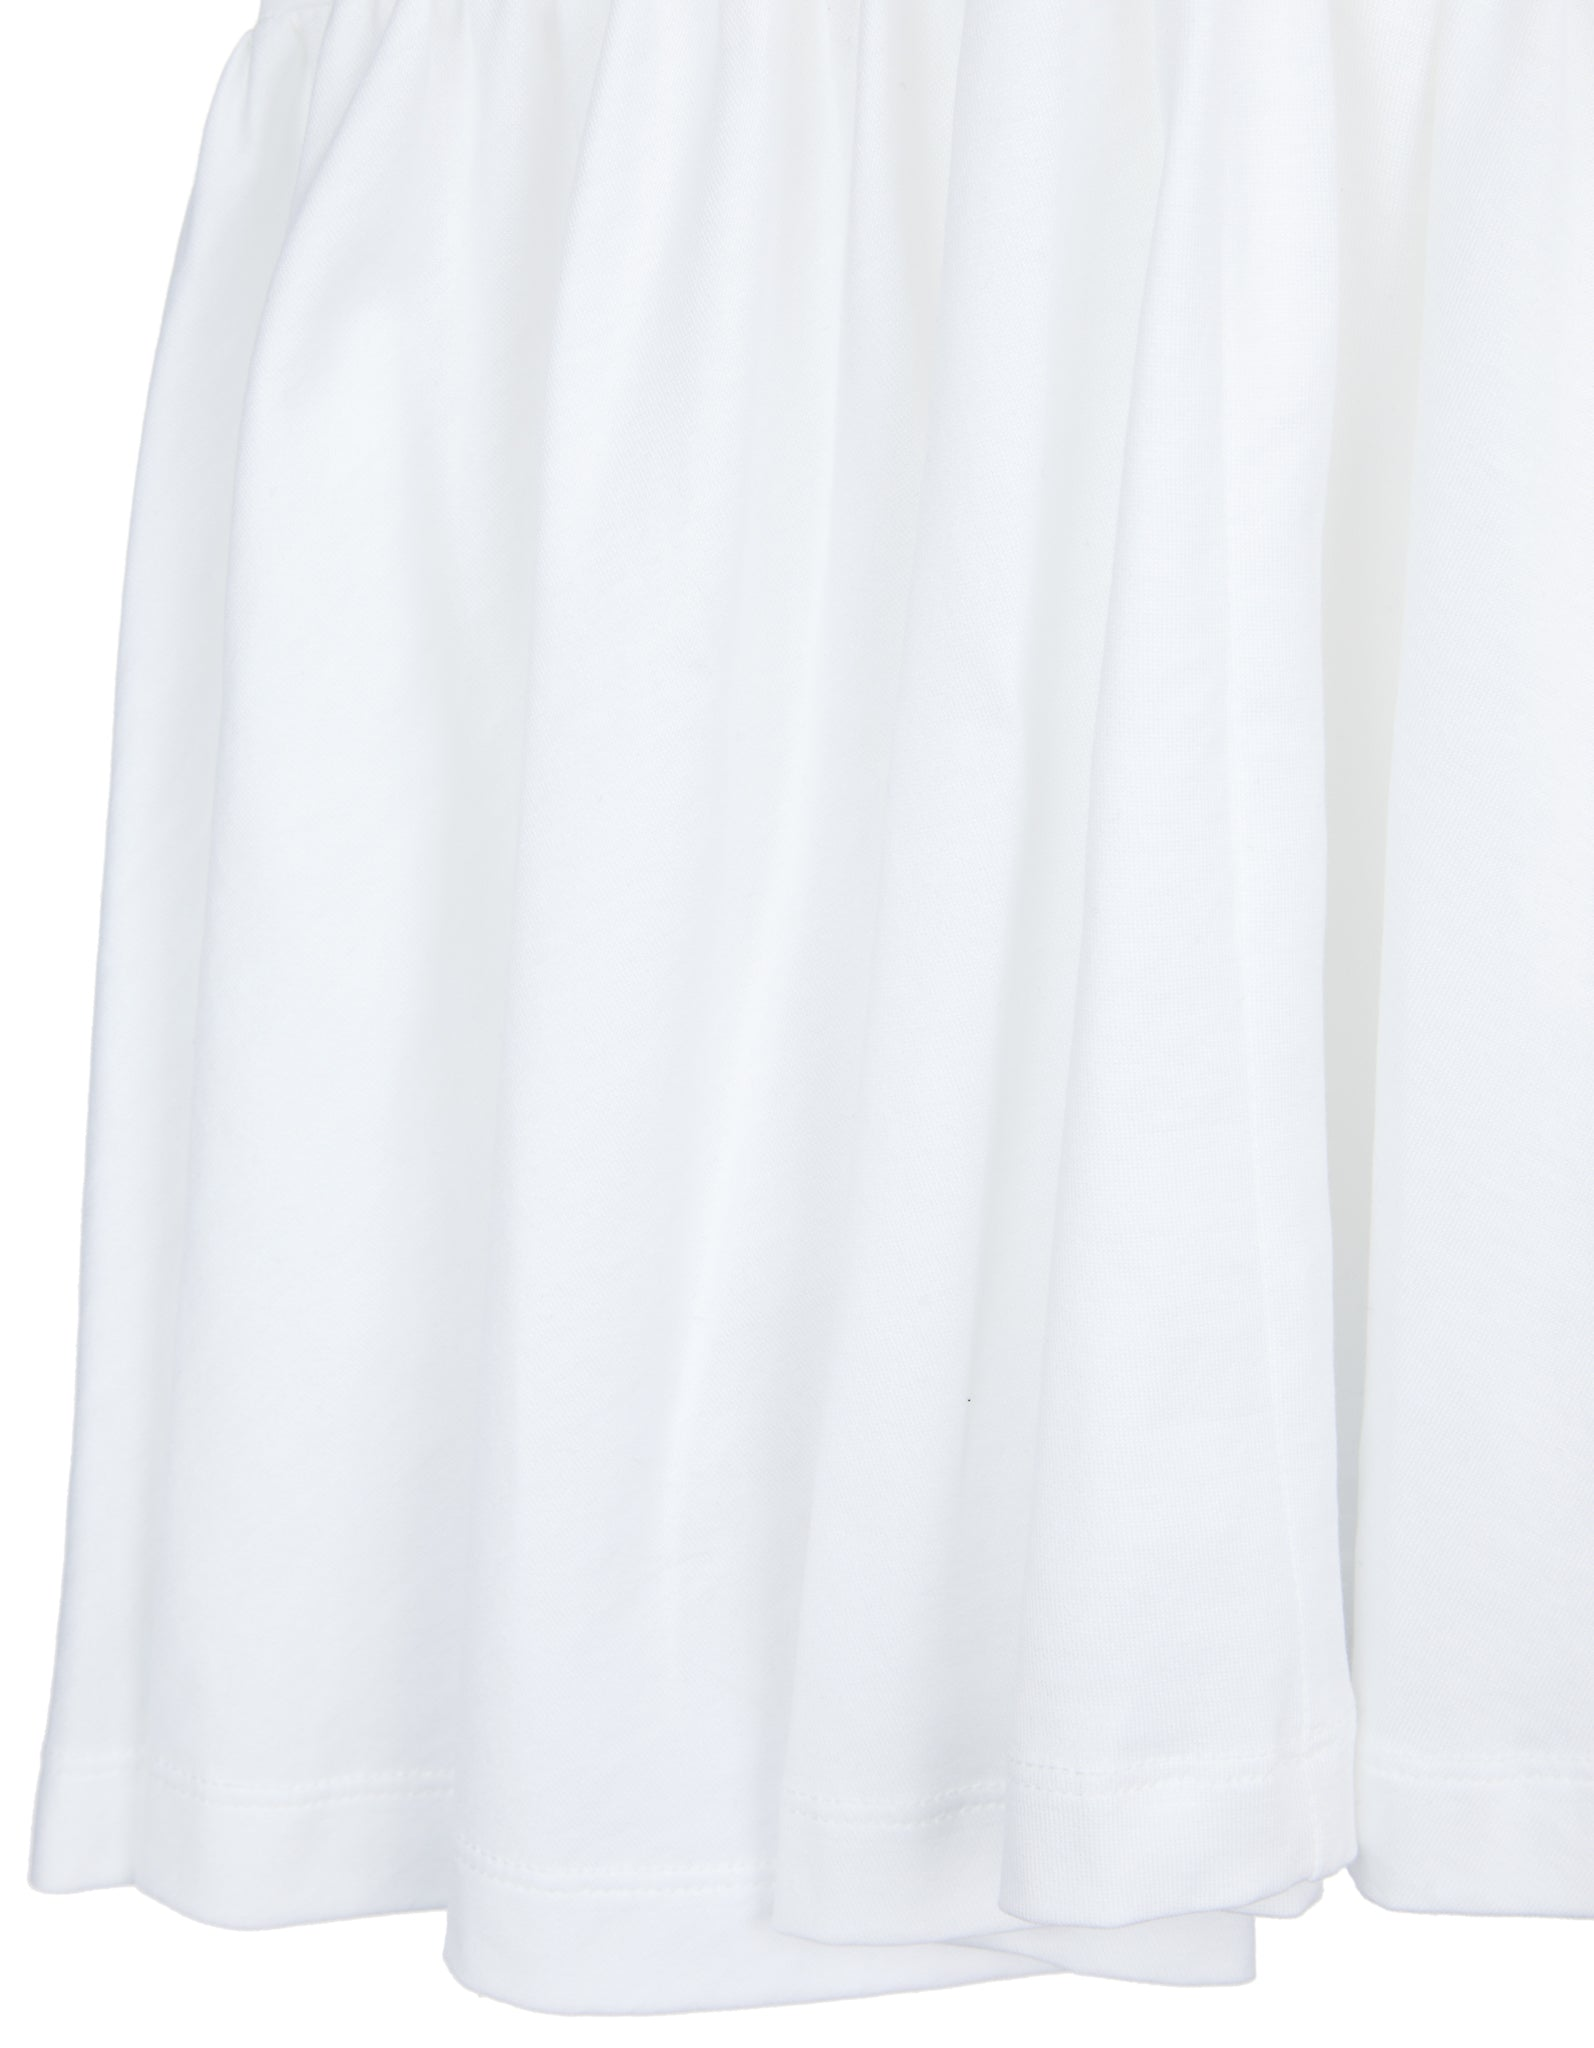 M'A KIDS GATHERED SEAMS DRESS IN WHITE